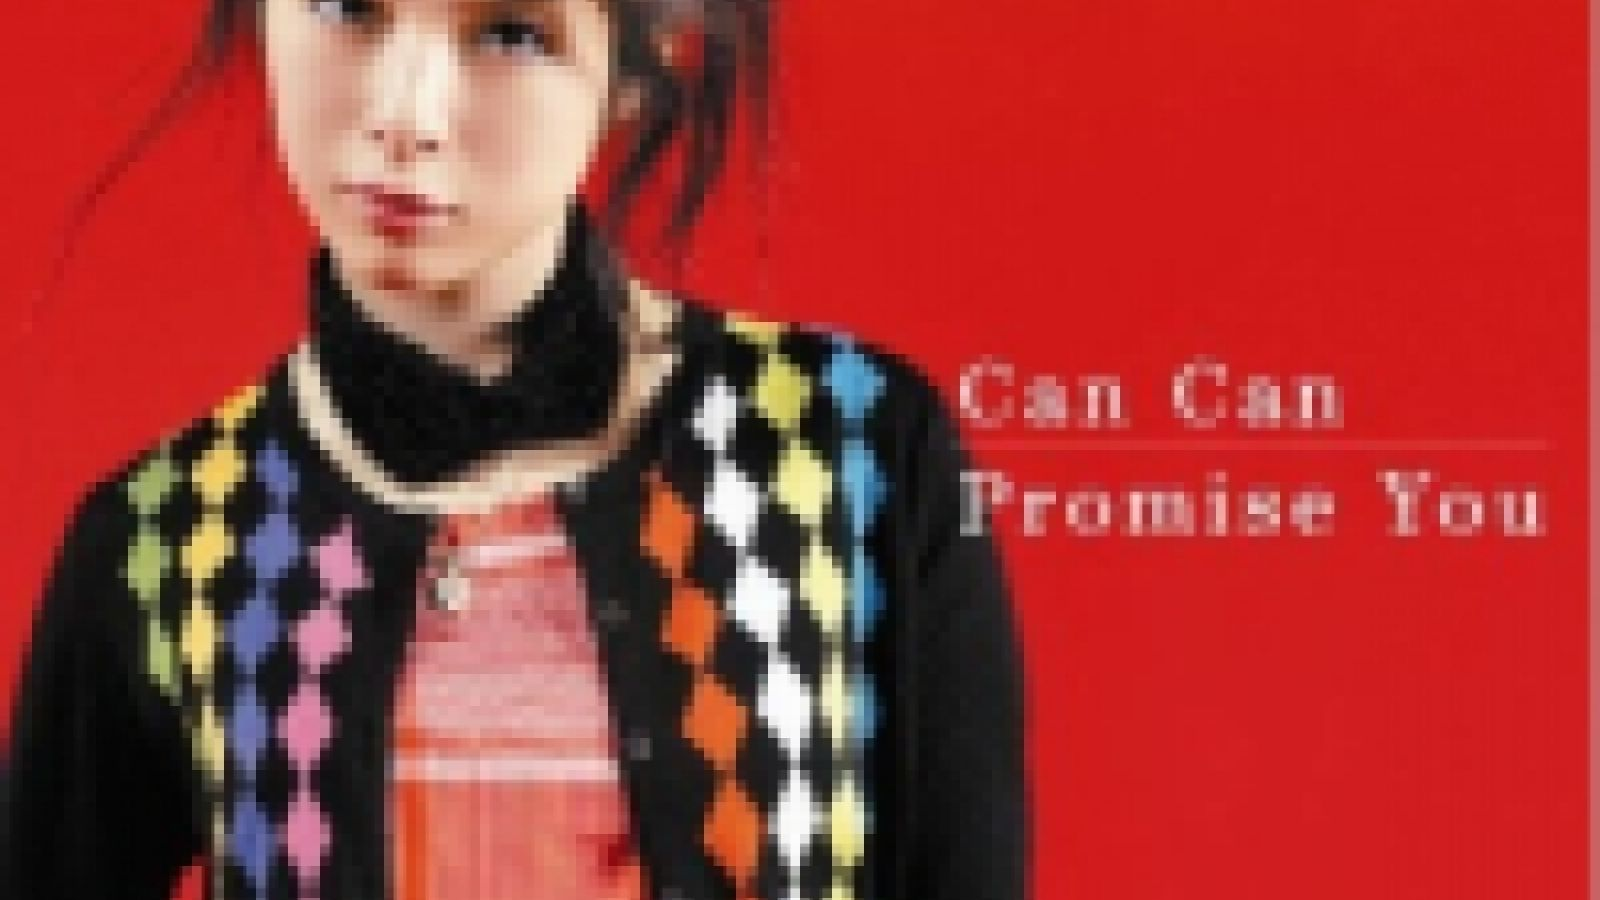 Fukui Mai - Can Can/Promise You © avex Entertainment Inc. All Rights Reserved